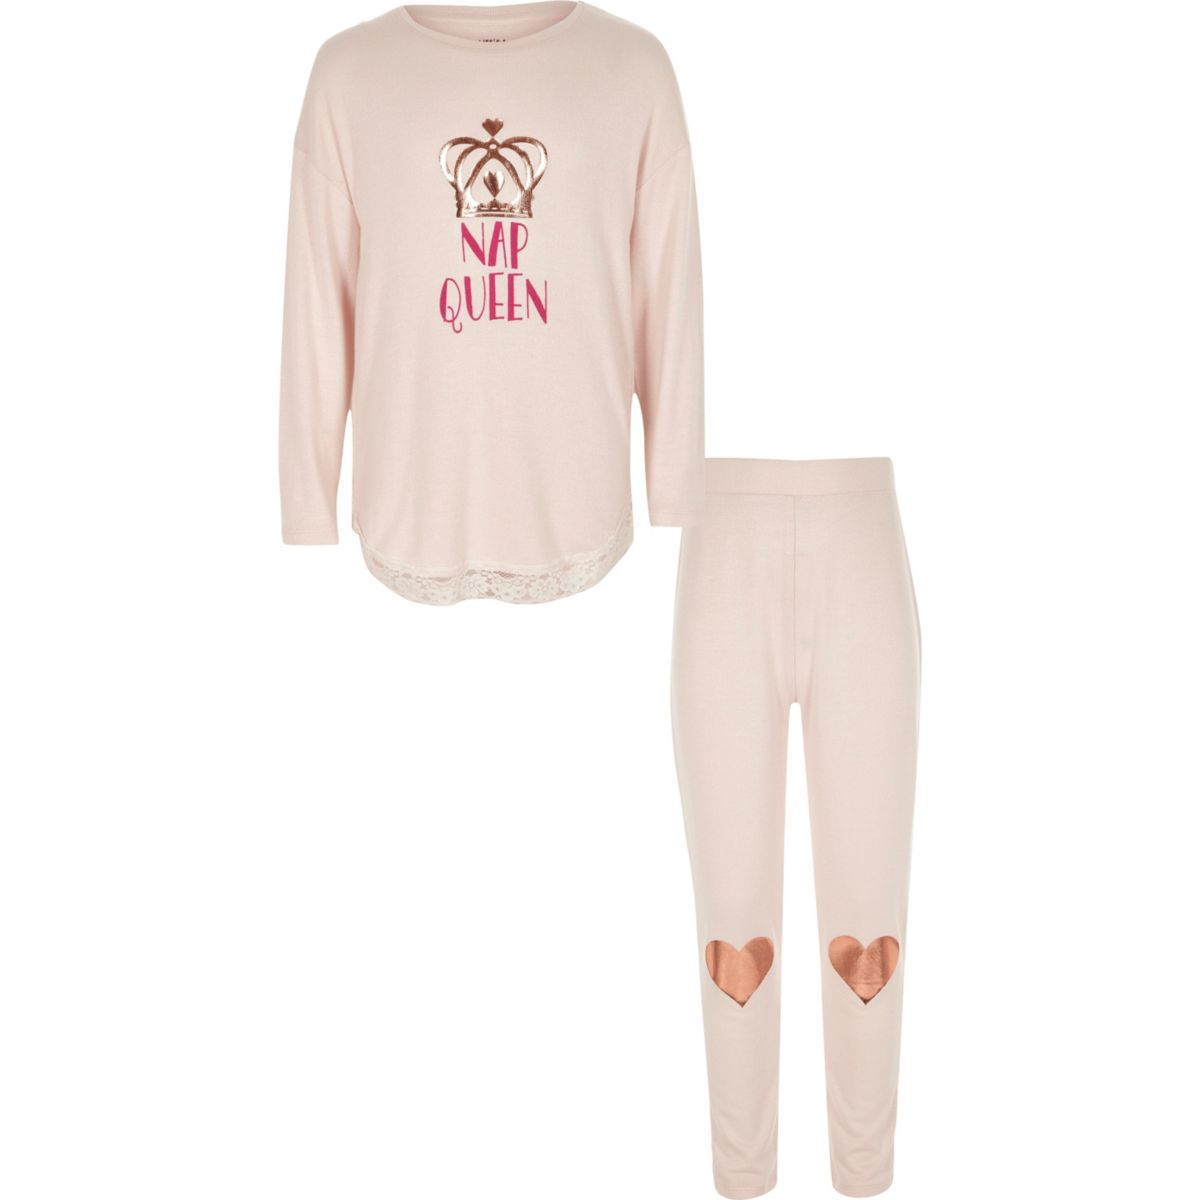 Girls light pink 'nap queen' pyjama set